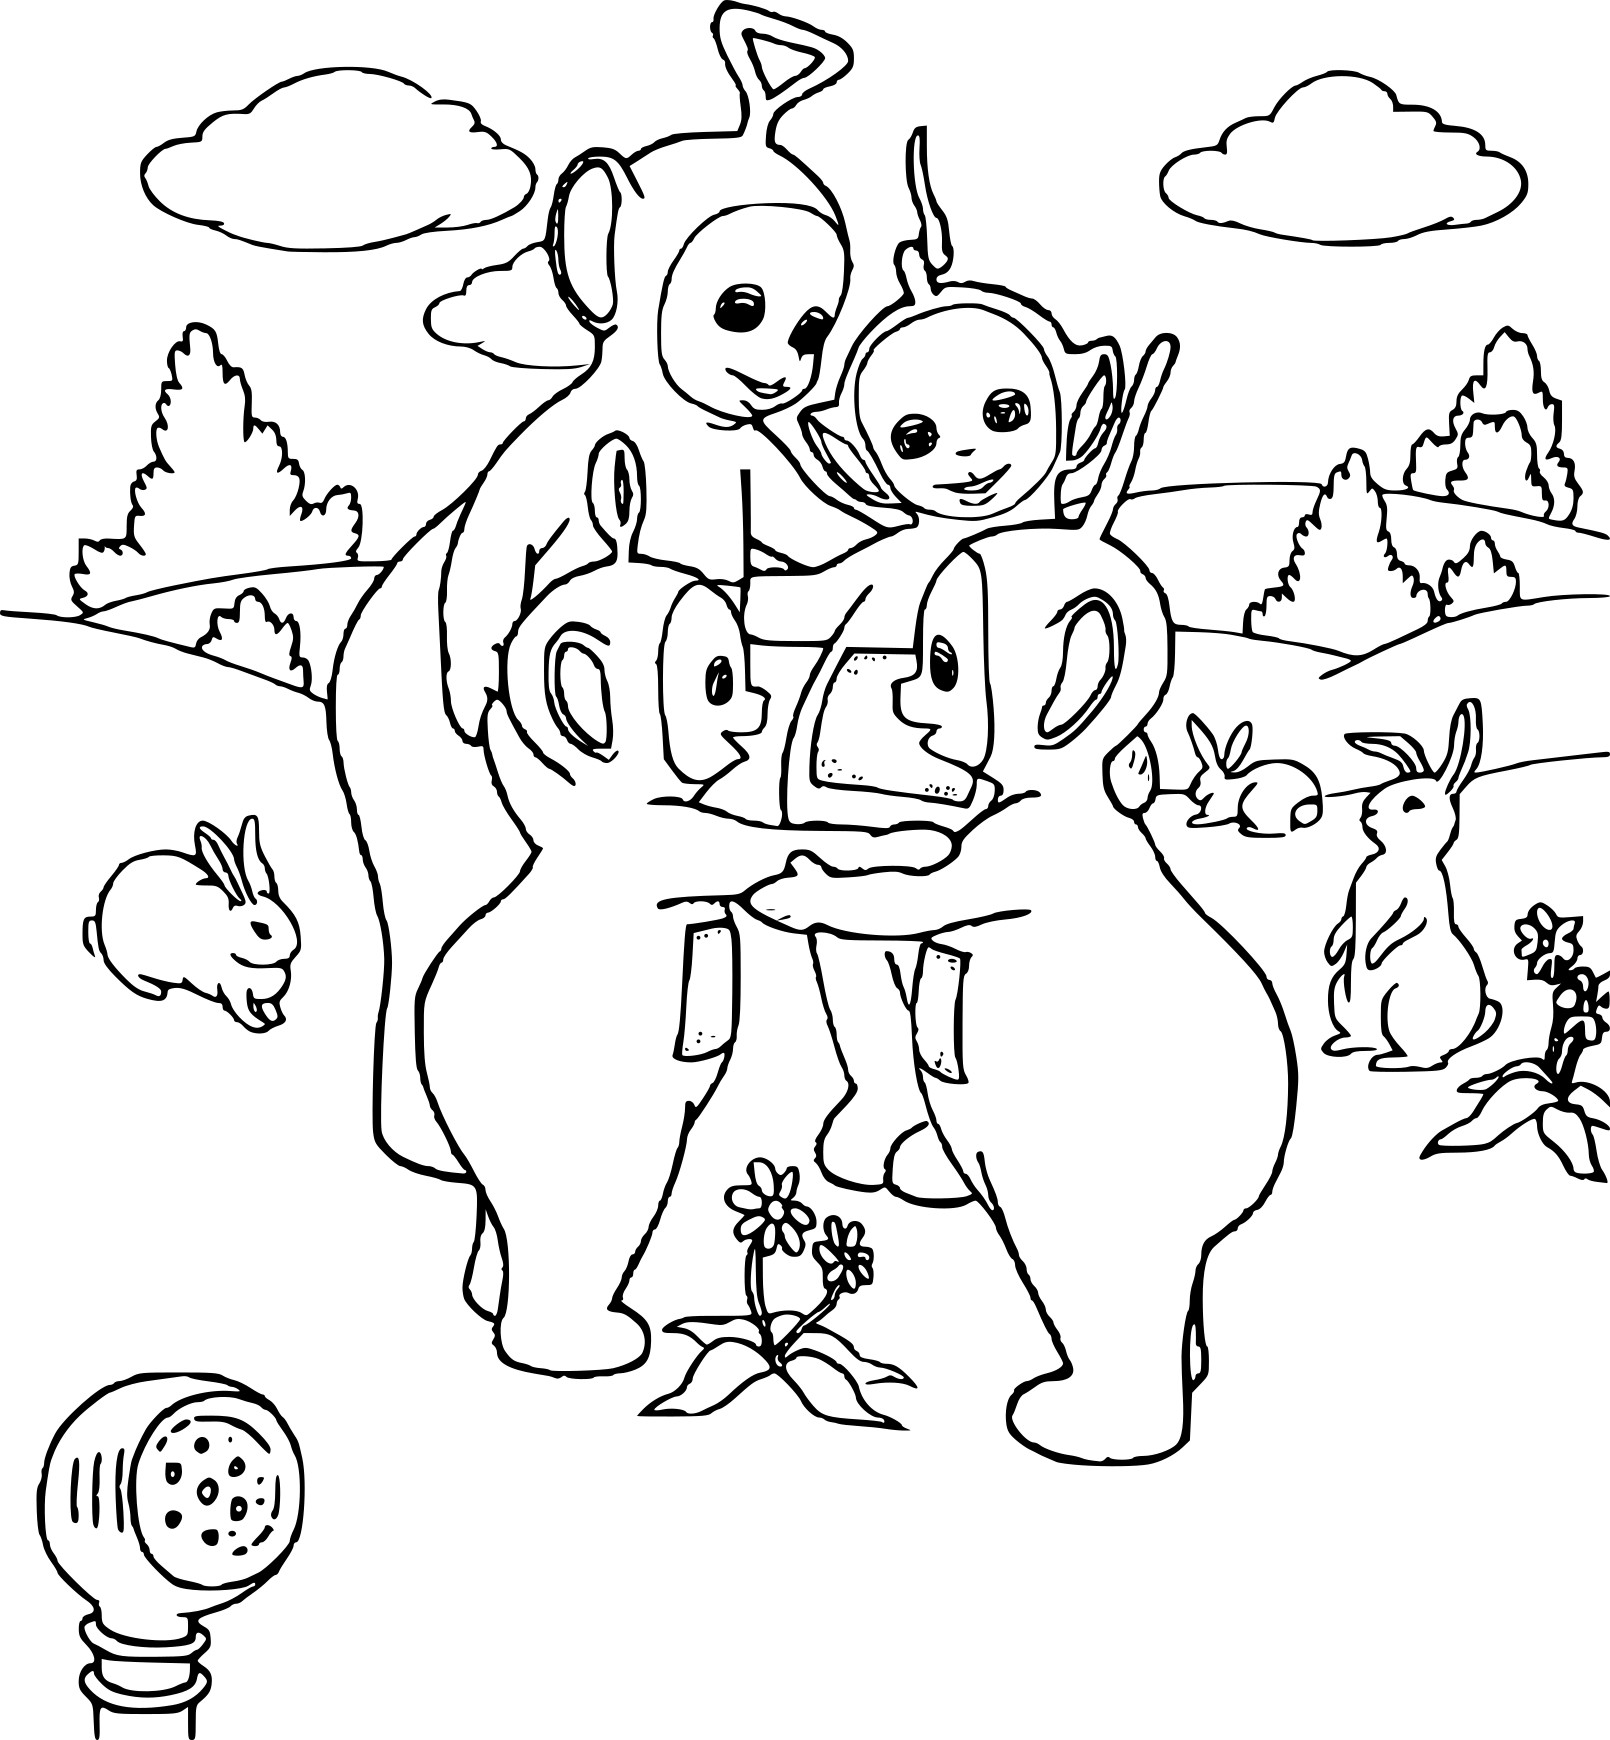 Coloriage Les Teletubbies